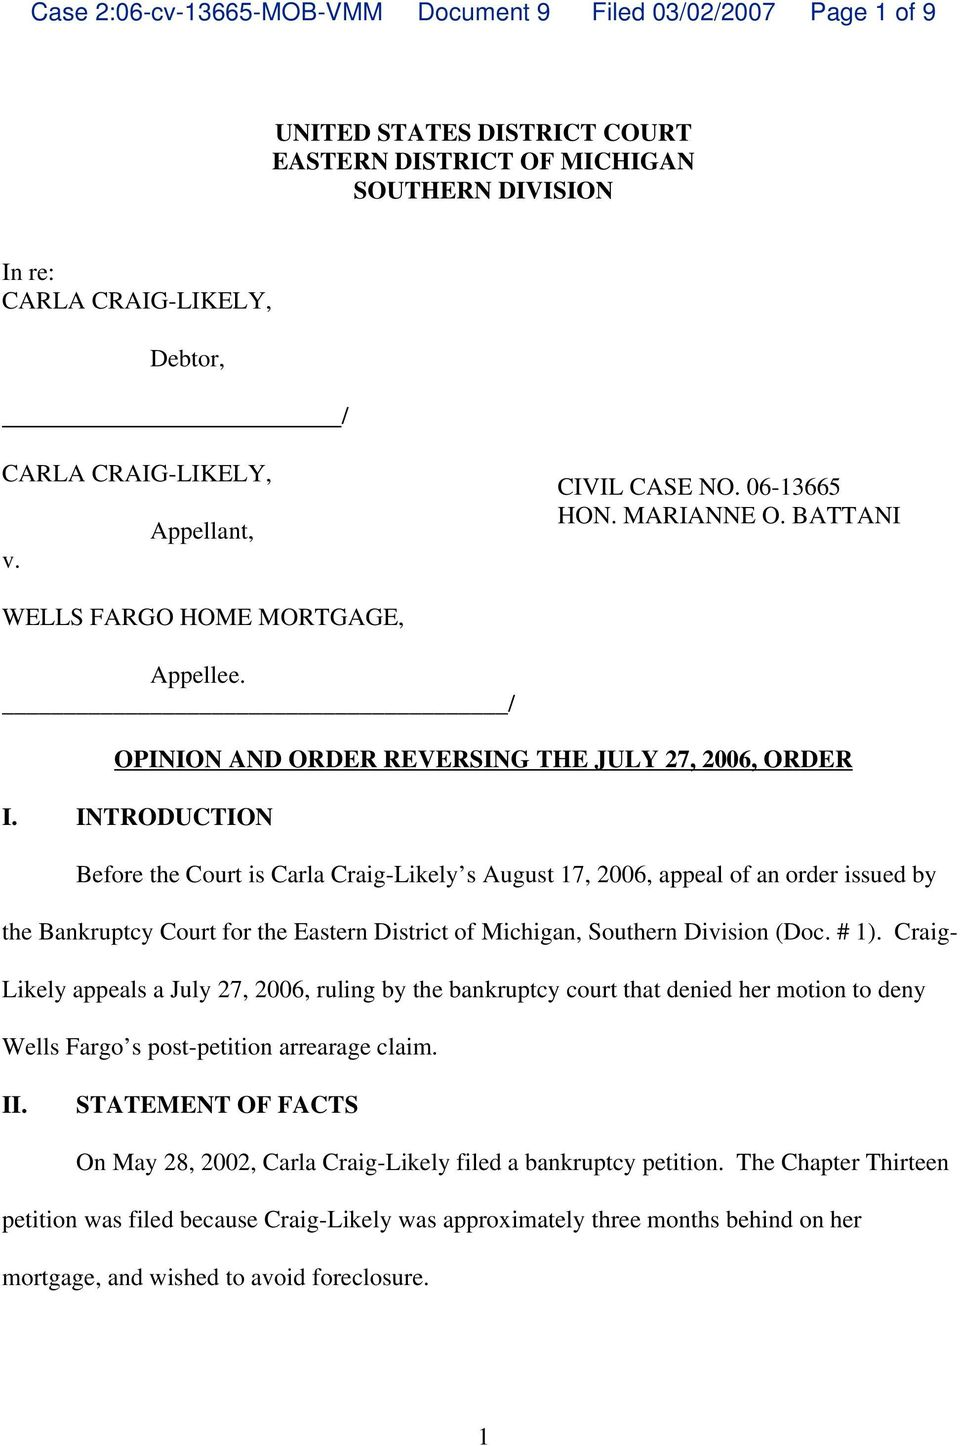 INTRODUCTION Before the Court is Carla Craig-Likely s August 17, 2006, appeal of an order issued by the Bankruptcy Court for the Eastern District of Michigan, Southern Division (Doc. # 1).